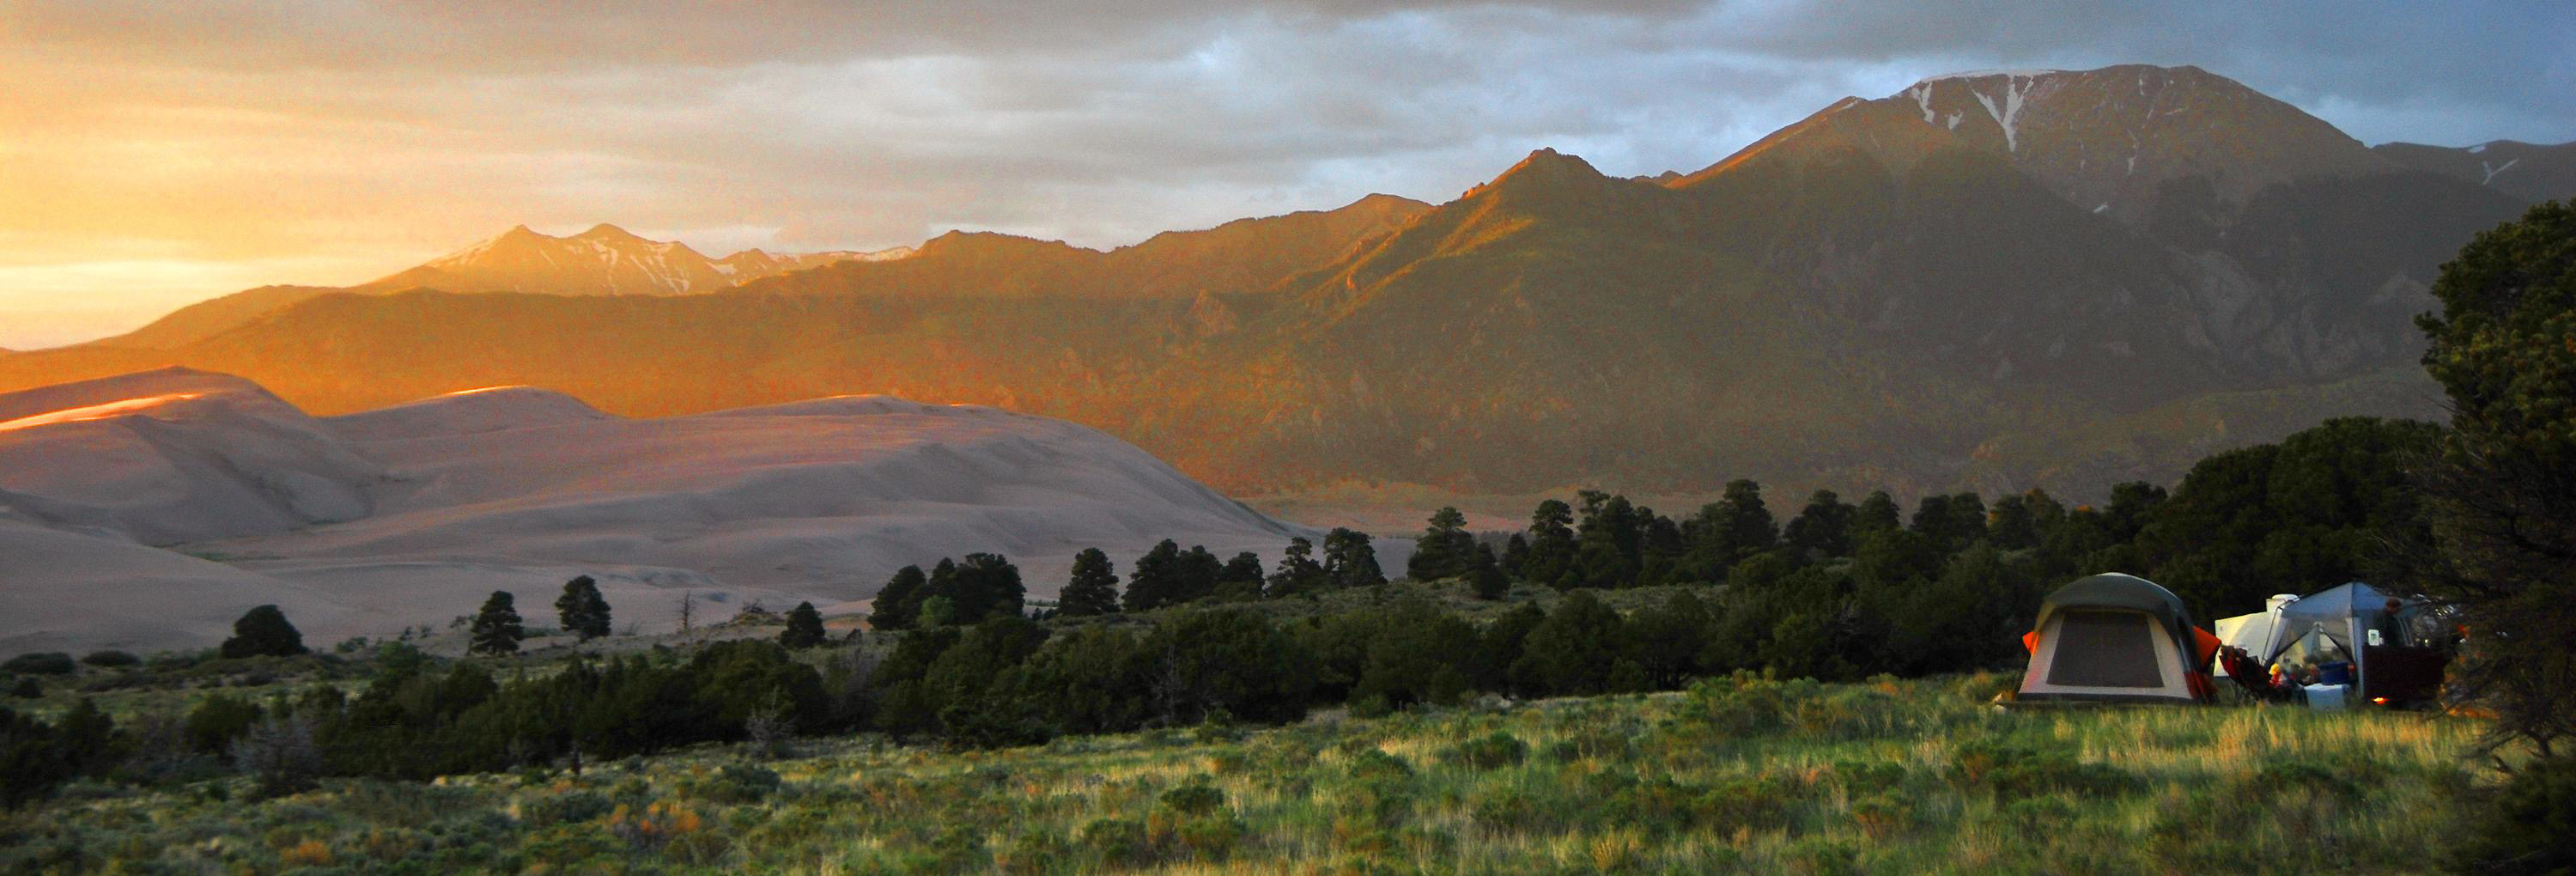 Sunrise Over The Hills In Great Sand Dunes National Park